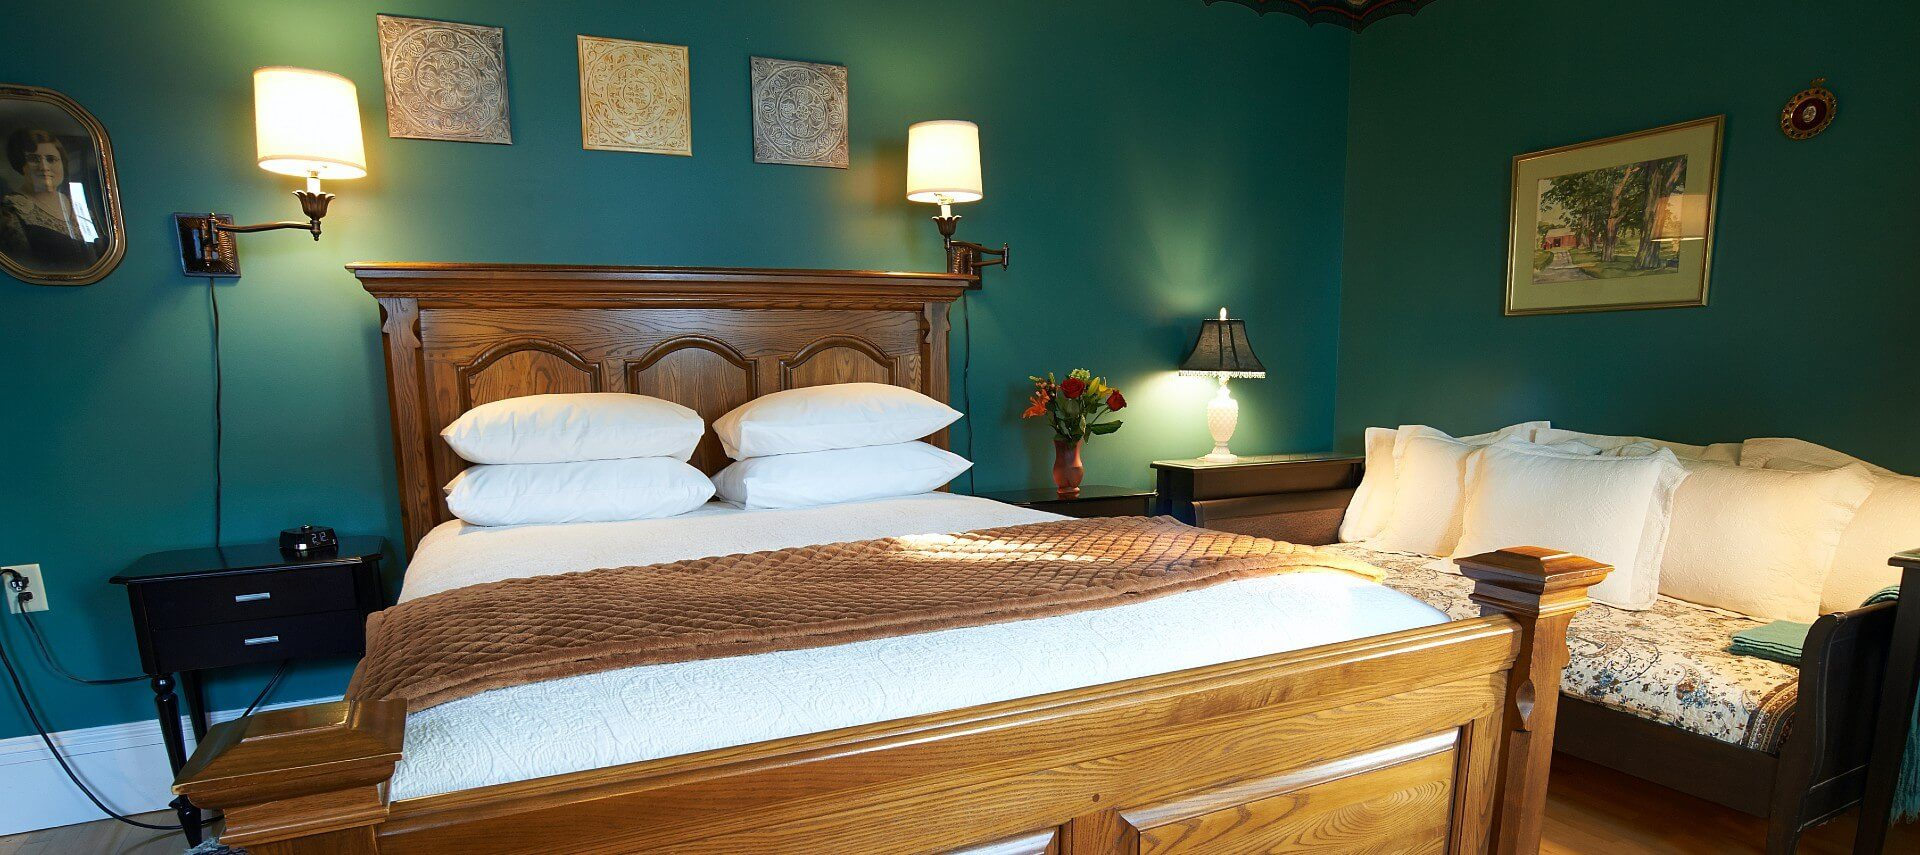 Bedroom with green walls, queen bed with large wooden headboard and footboard, day bed and paintings on the walls.